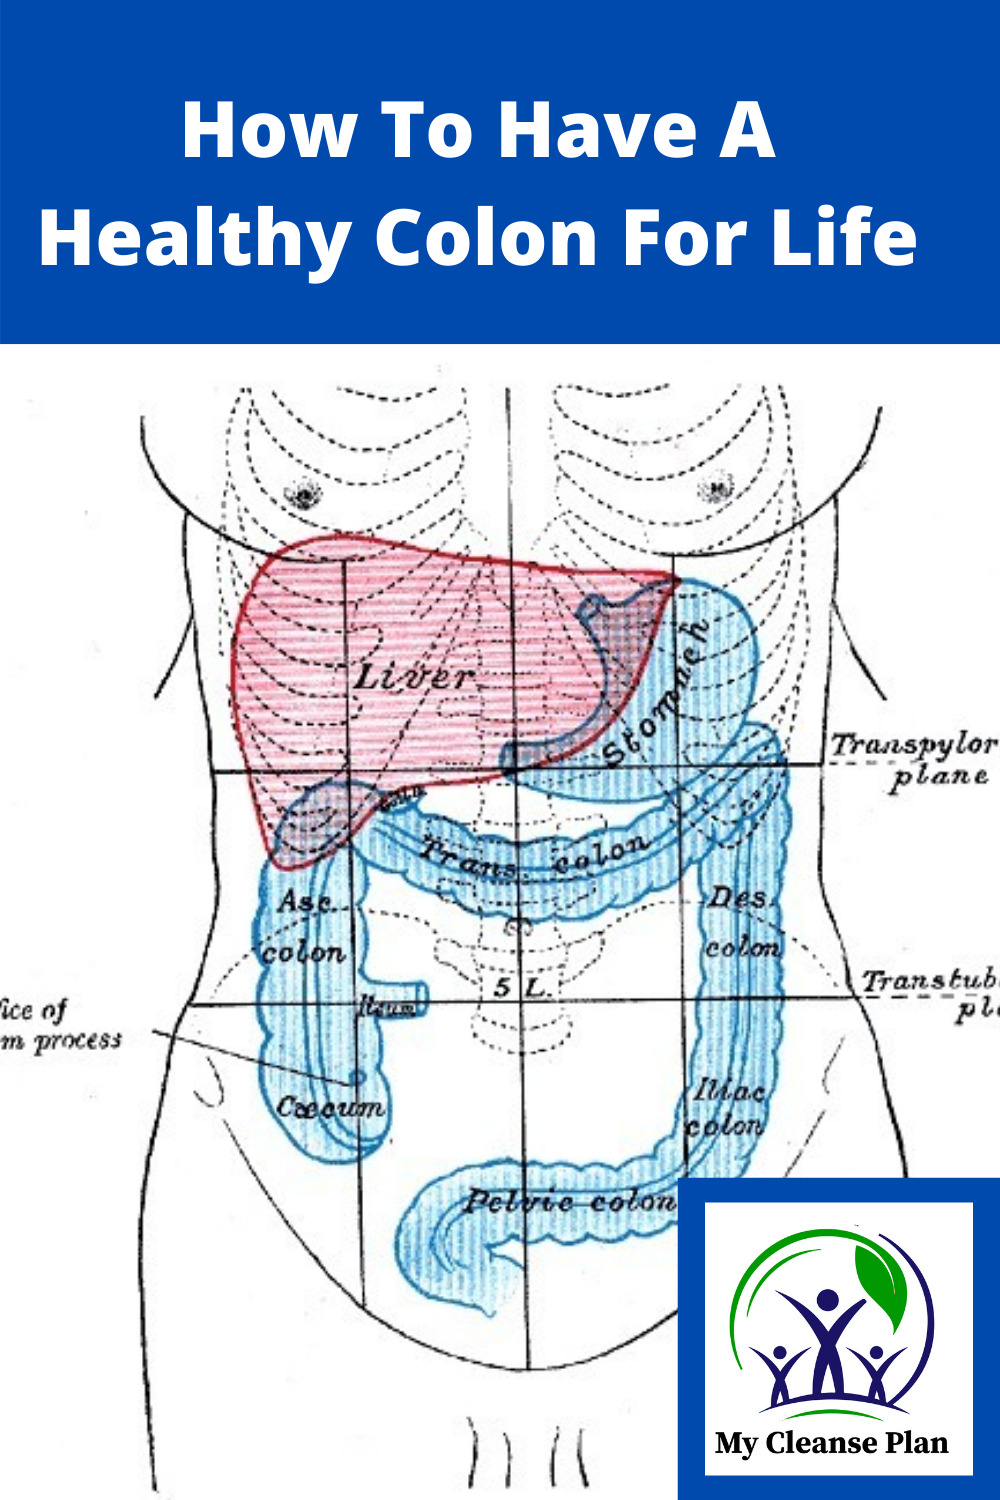 How To Have A Healthy Colon For Life